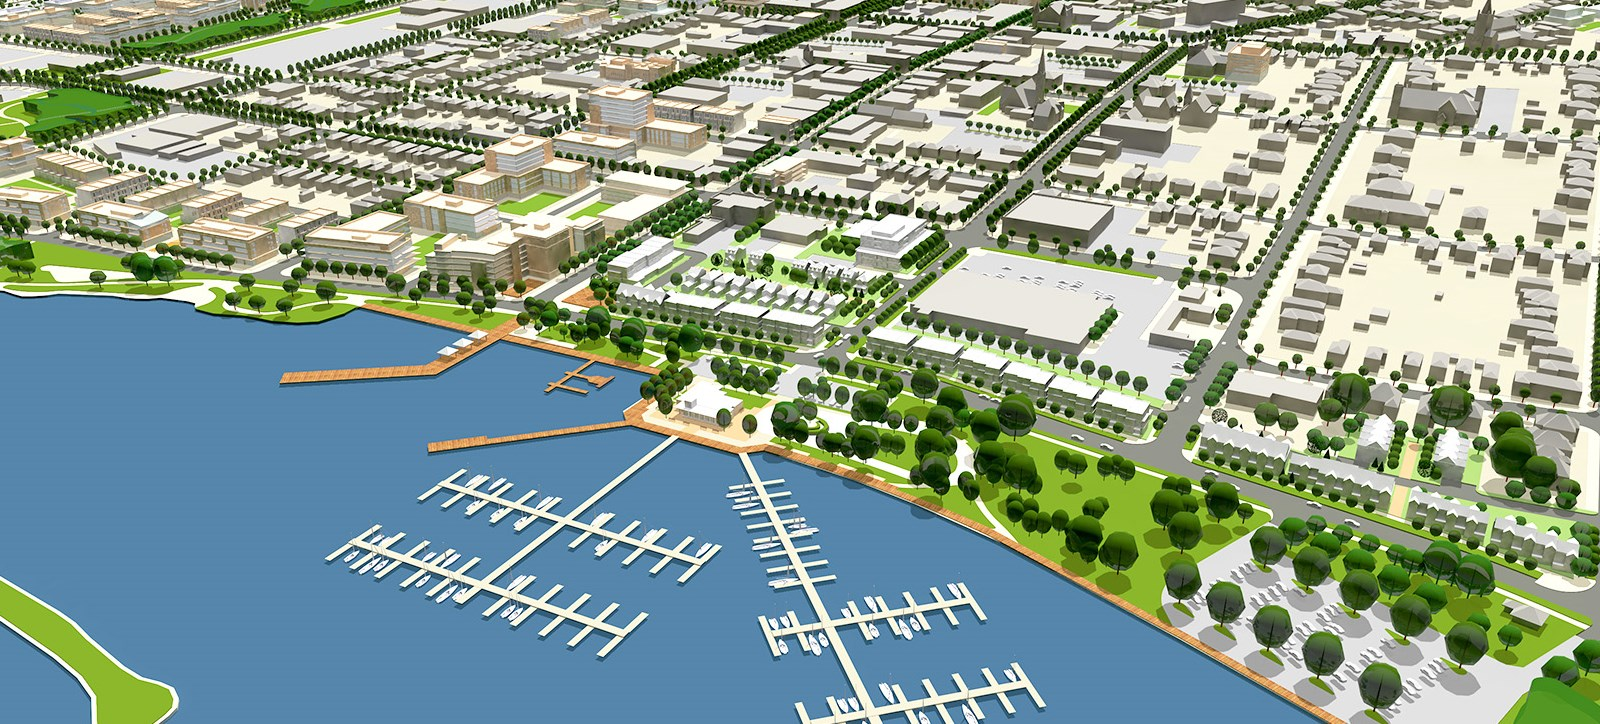 Rendering of the Waterfront preferred development